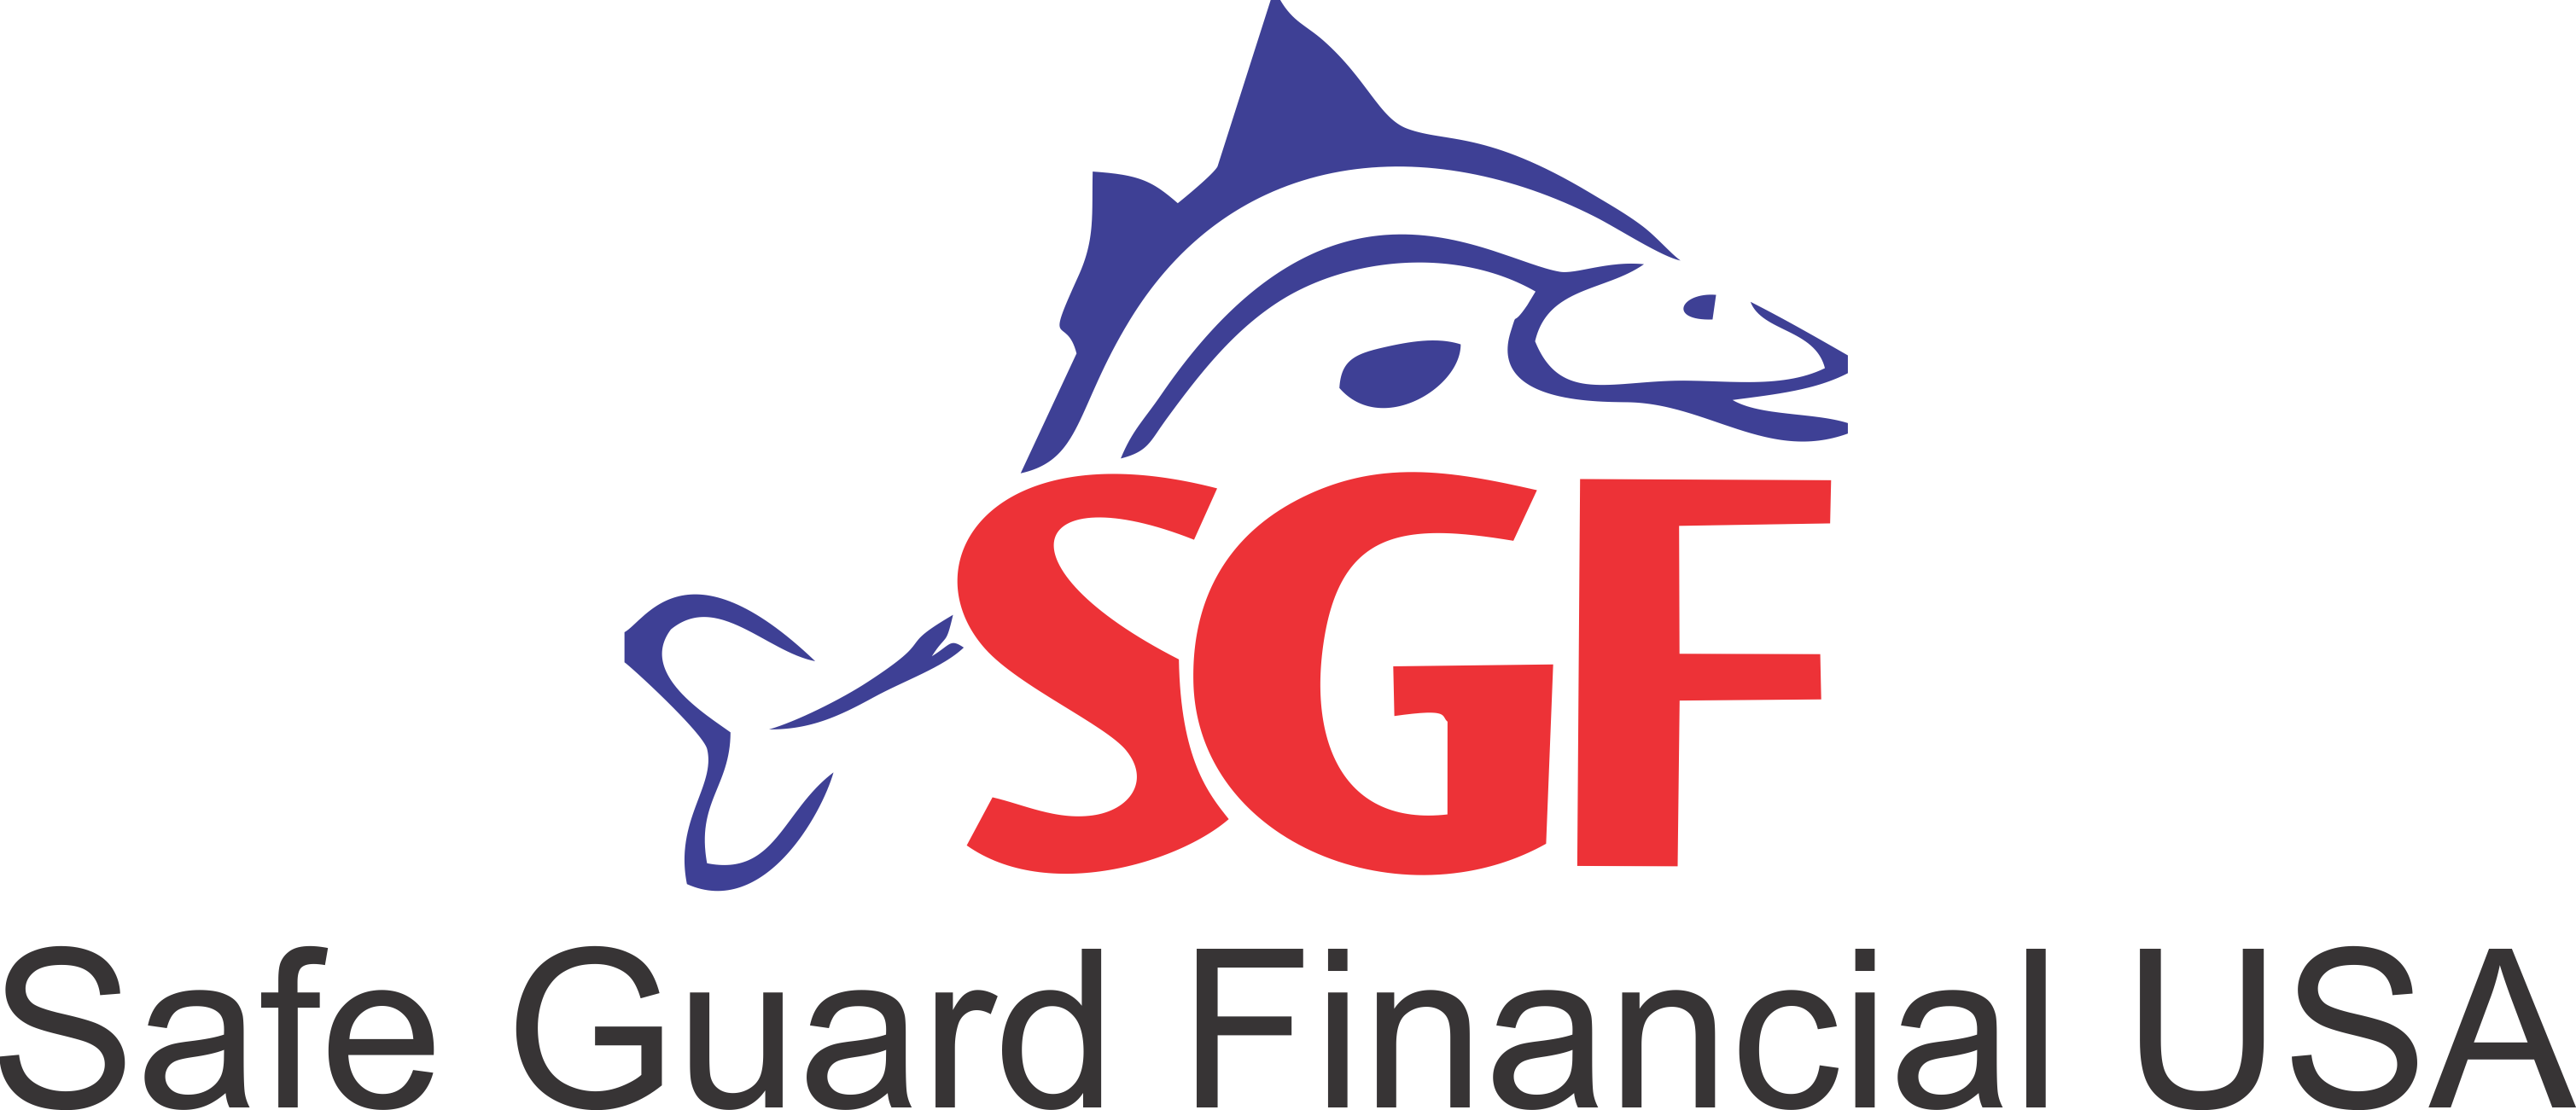 Safe Guard Financial USA